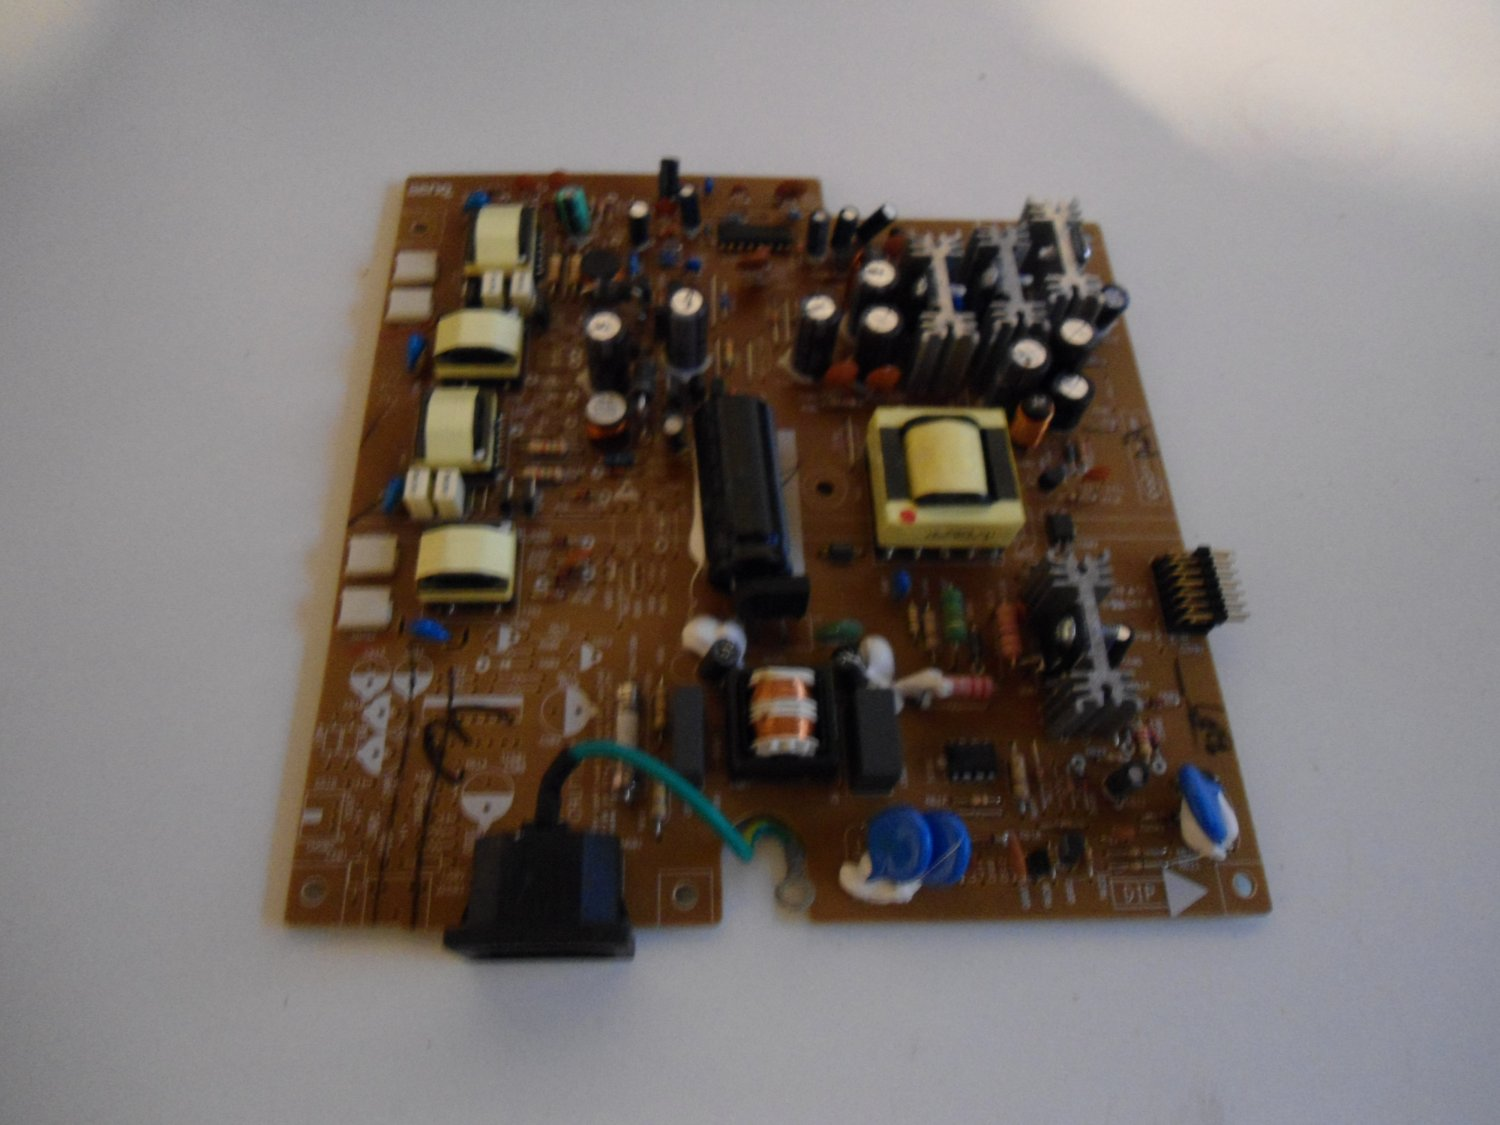 48.L9002.A11 BenQ LCD high-voltage integrated power supply